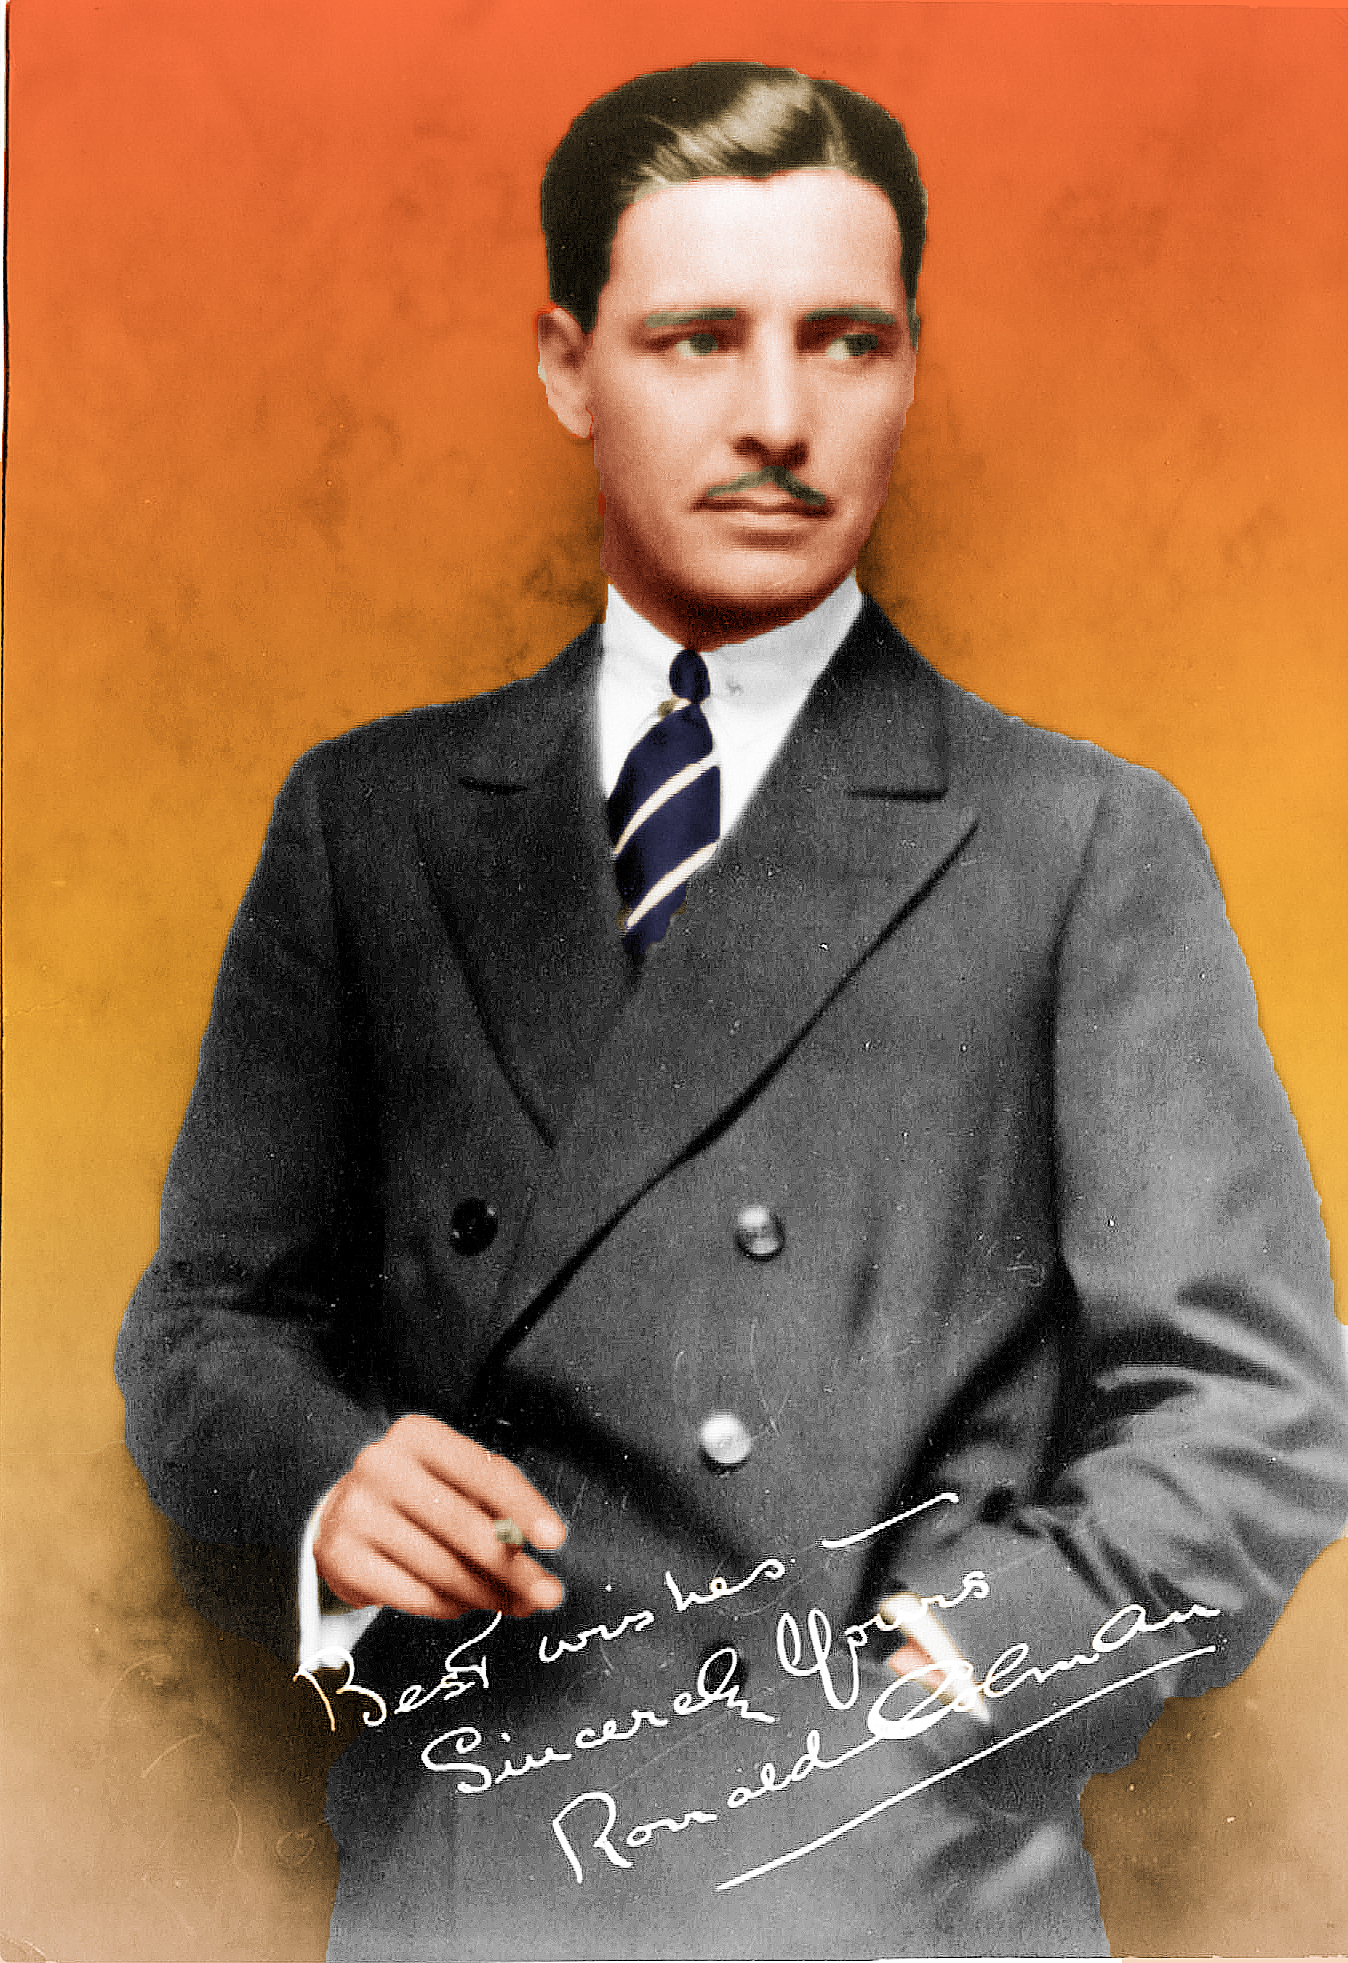 ronald colman tale of two citiesronald colman lost horizon, ronald colman holland, ronald colman, ronald colman actor, ronald colman imdb, ronald colman filmography, ronald colman youtube, ronald colman a very private person, ronald colman grave, ronald colman and thelma raye relationship, ronald colman movies youtube, ronald colman house, ronald colman football, ronald colman and greer garson, ronald colman tale of two cities, ronald colman voice, ronald colman moustache, ronald colman gay, ronald colman a double life, ronald colman md